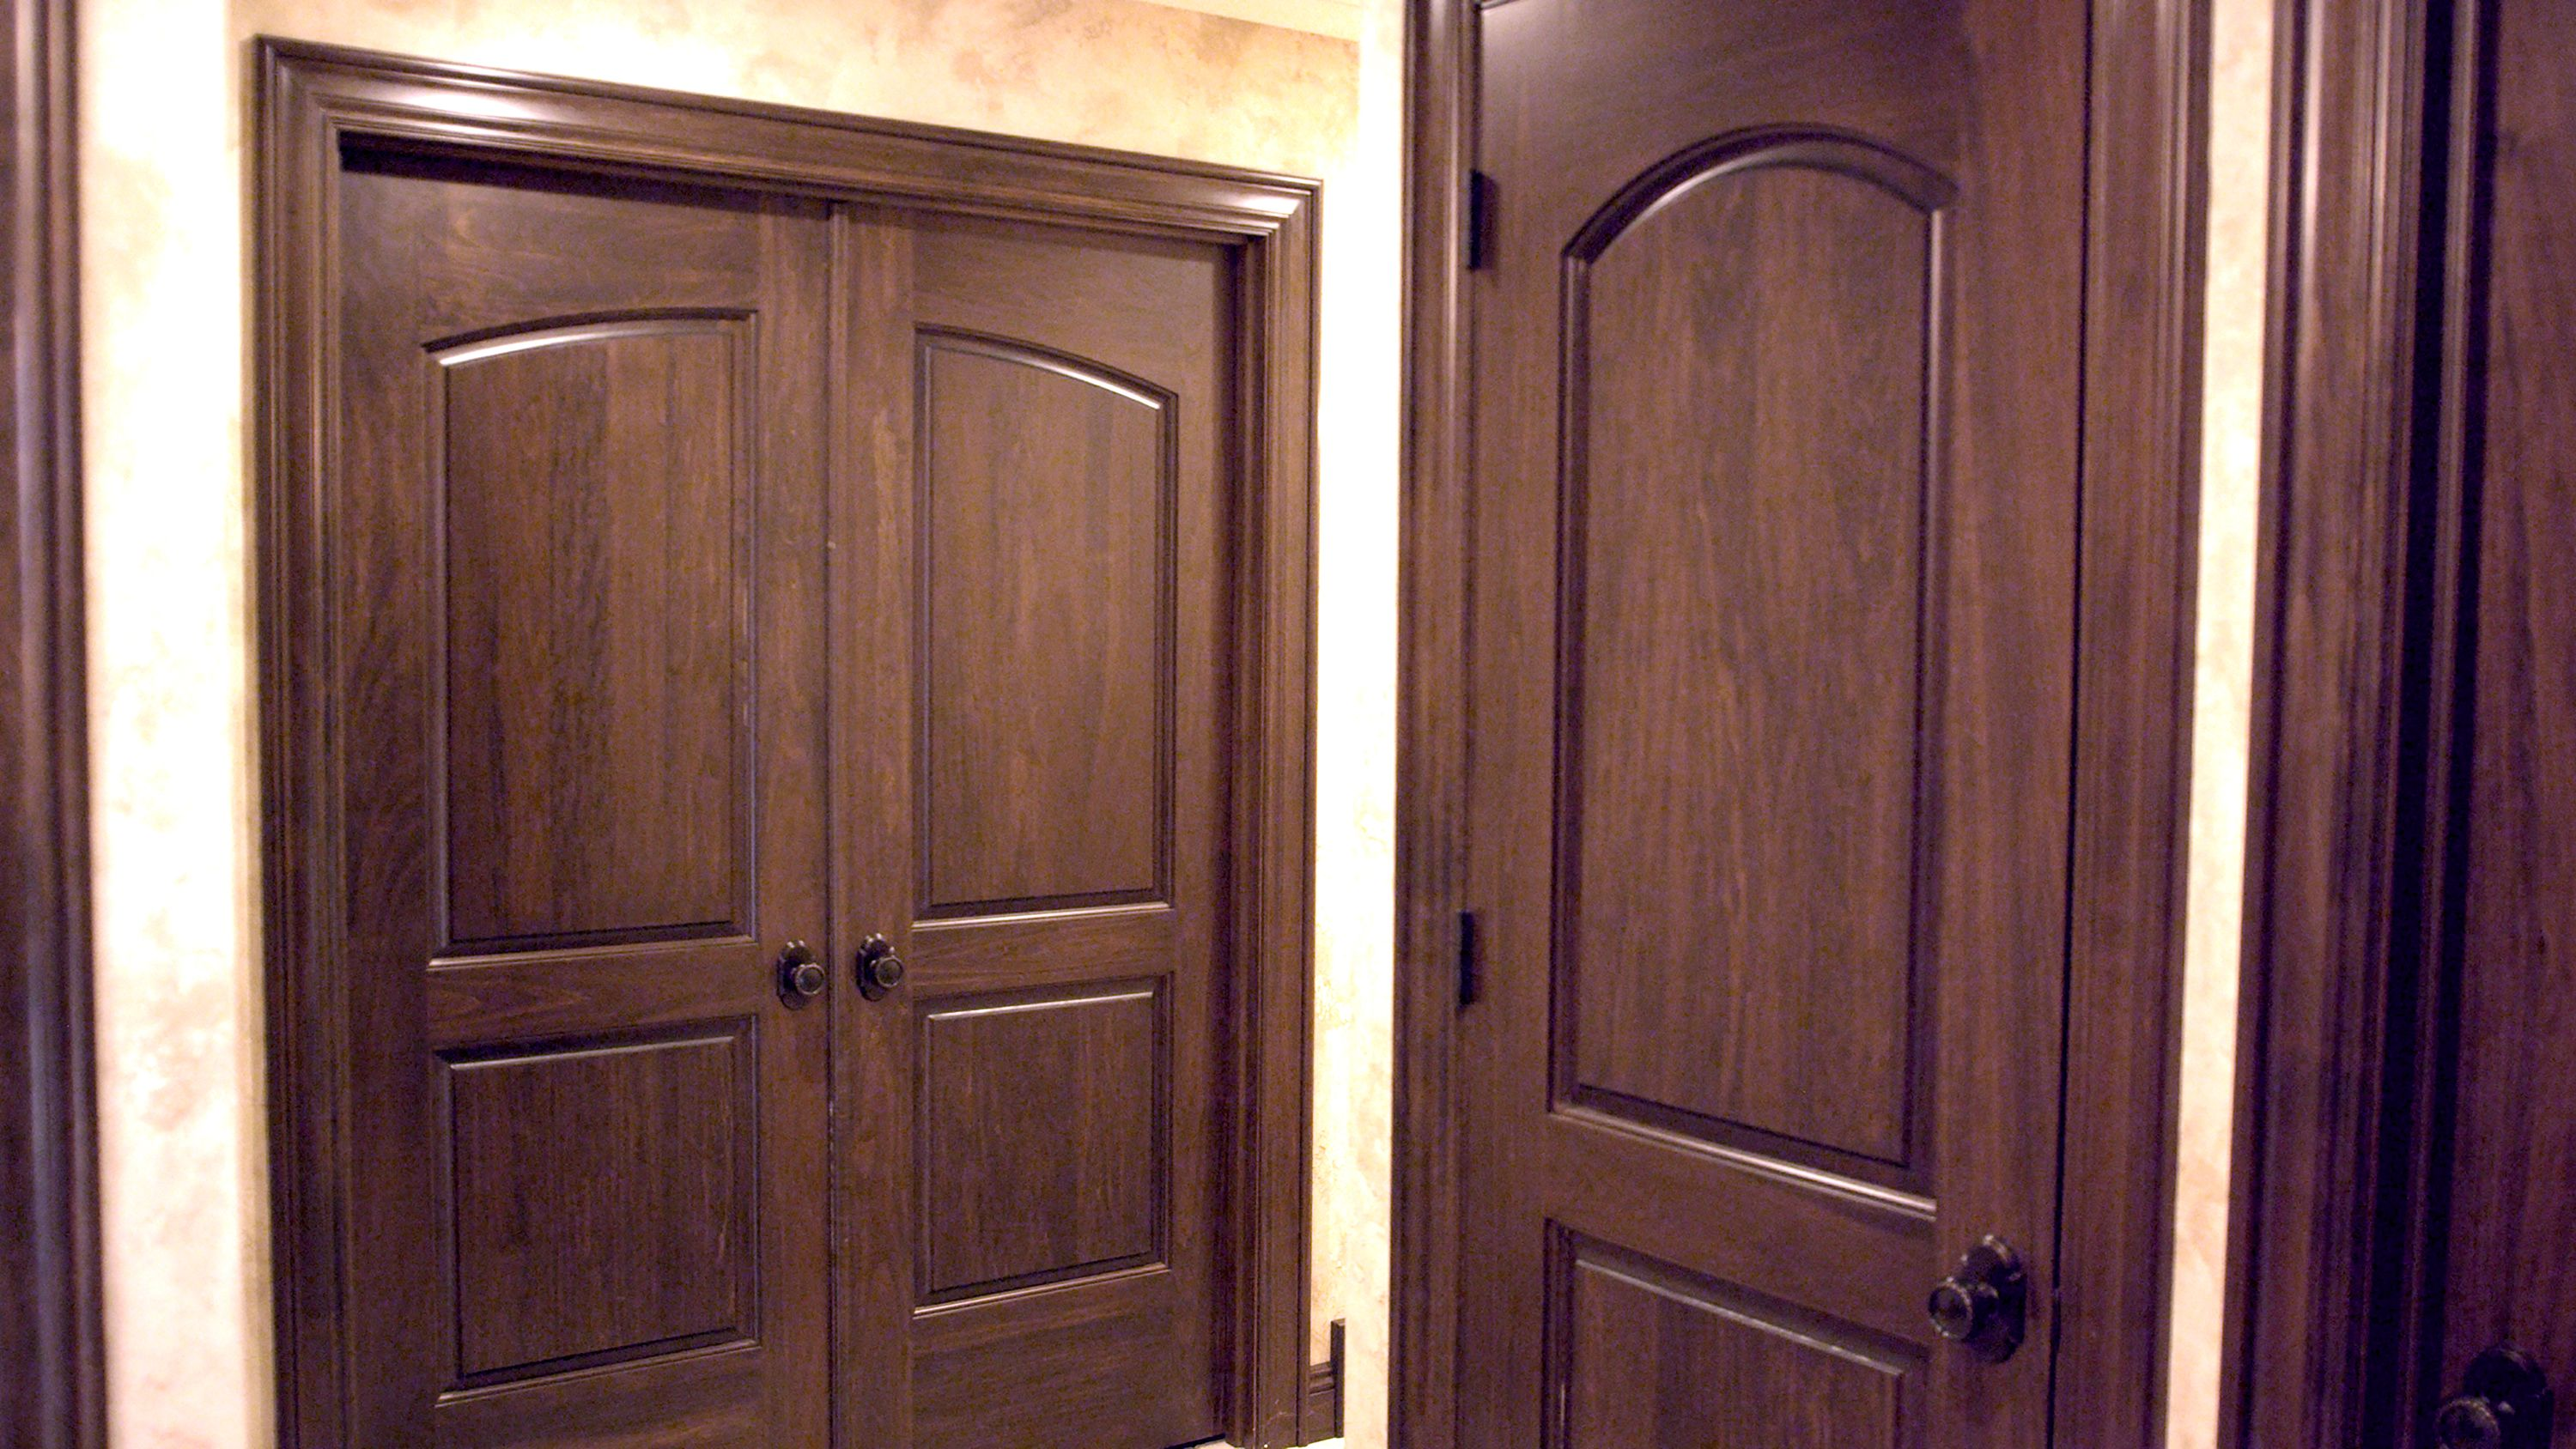 Custom poplar interior two panel continental closet door and two ...